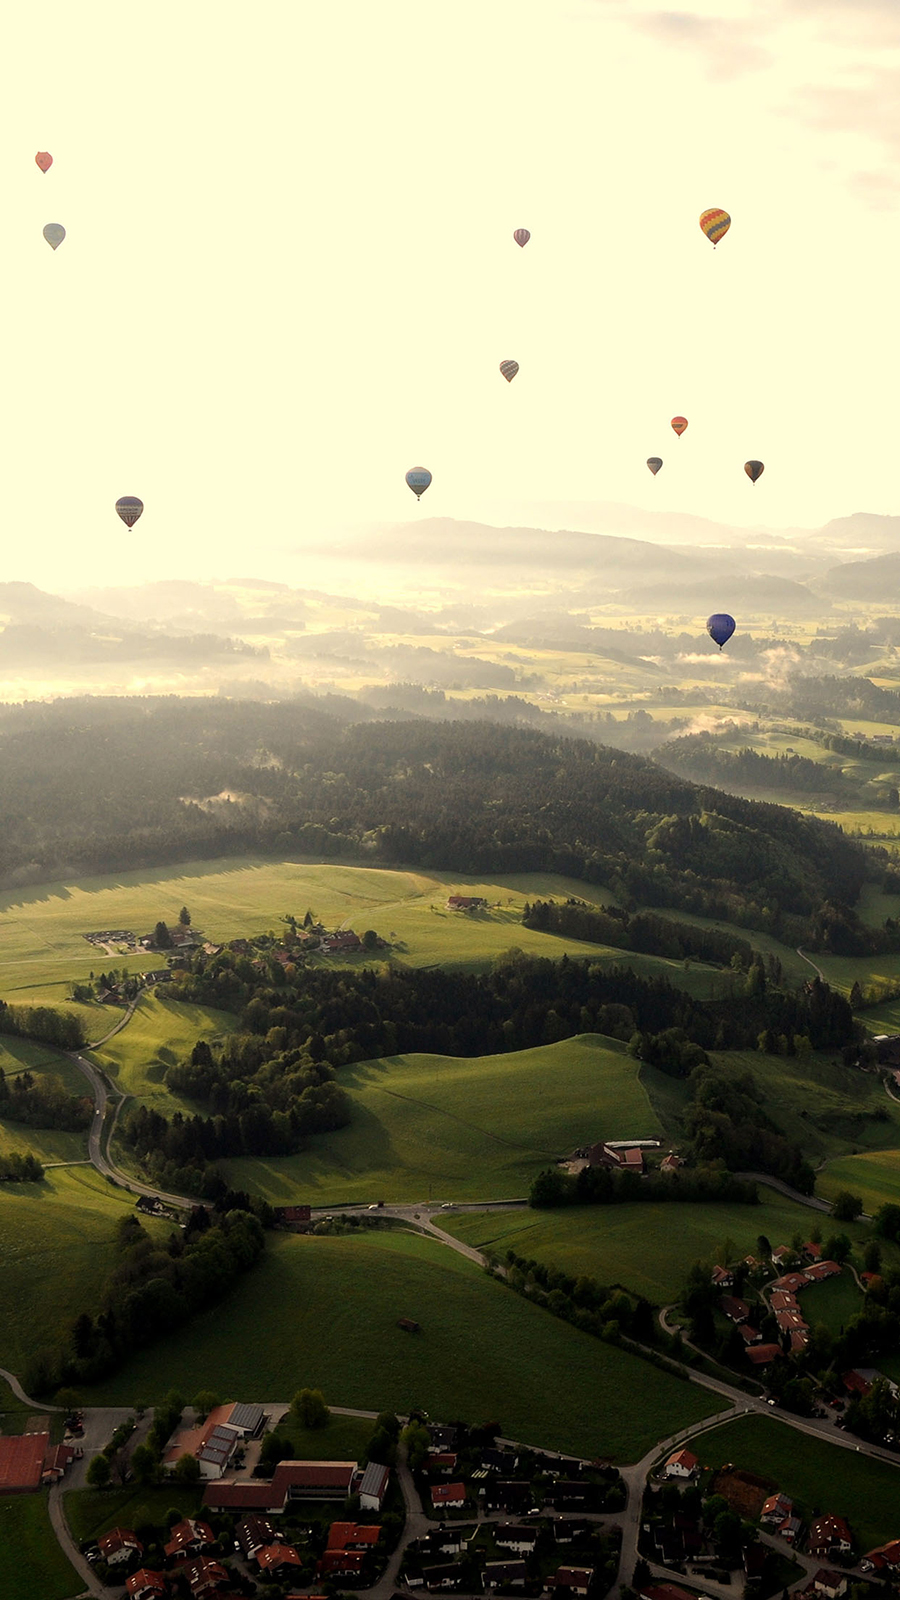 Balloon Party Sky Wallpapers Free Download